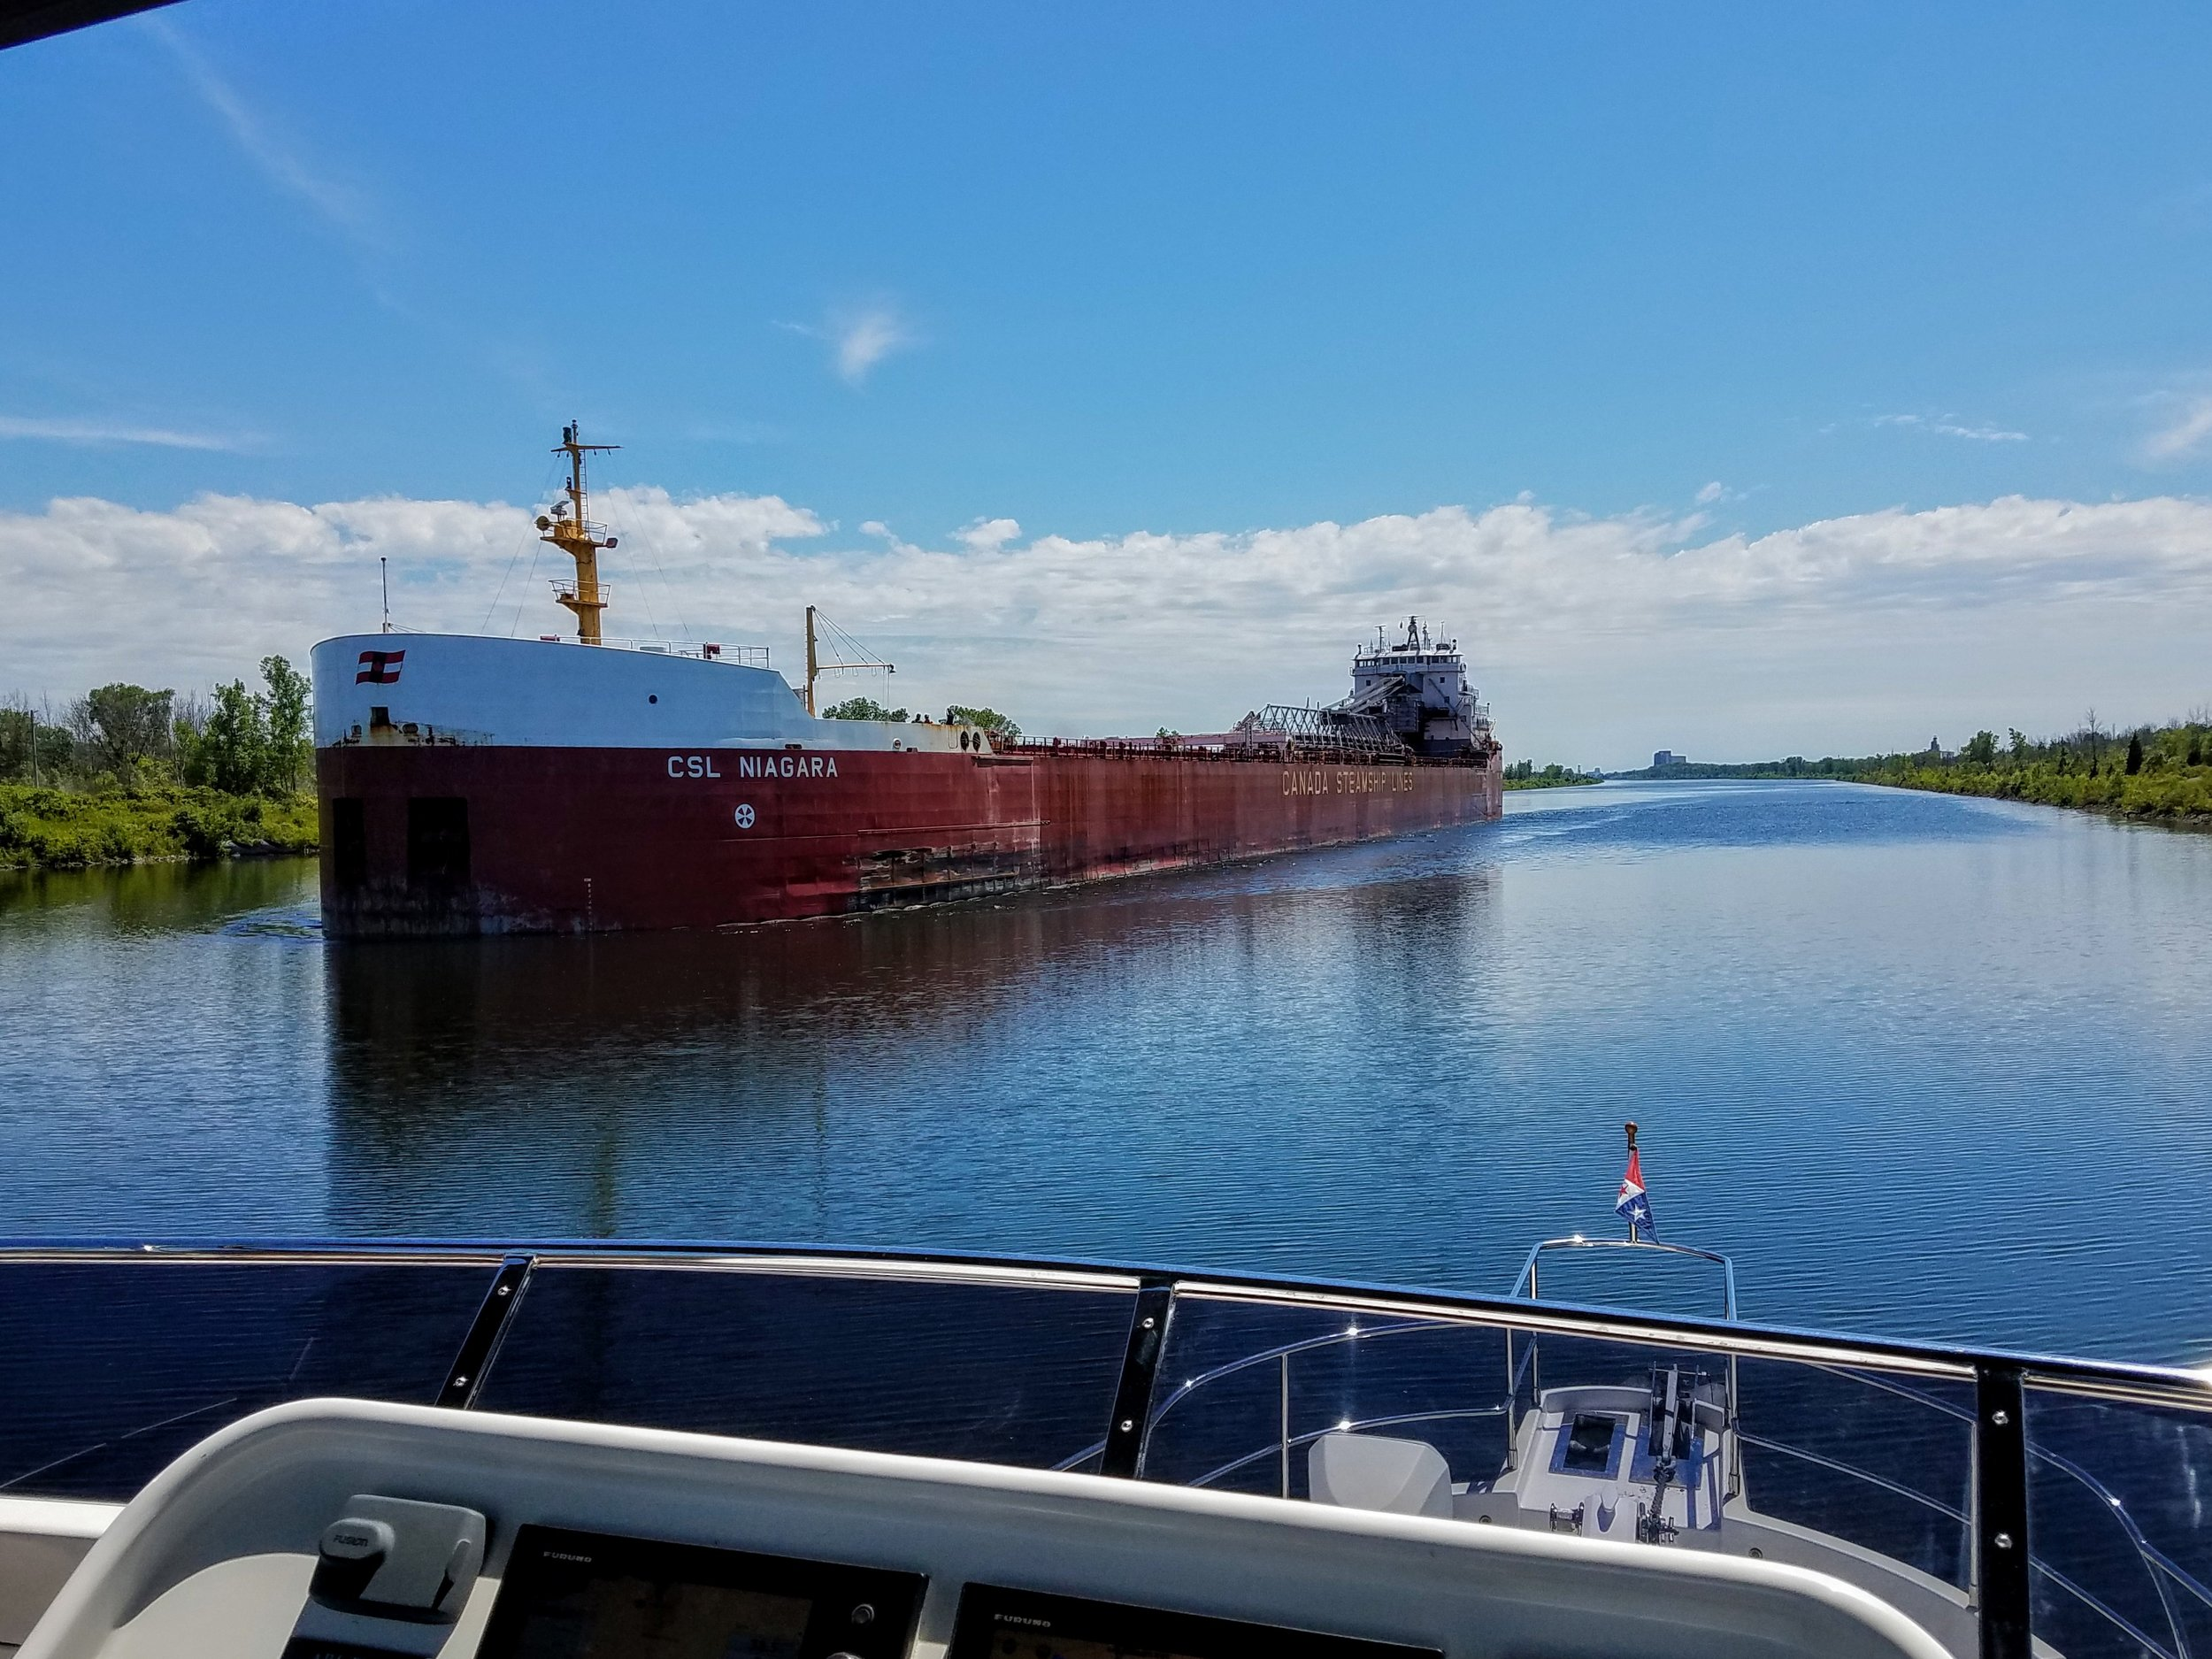 This is the normal size of traffic on the Welland Canal